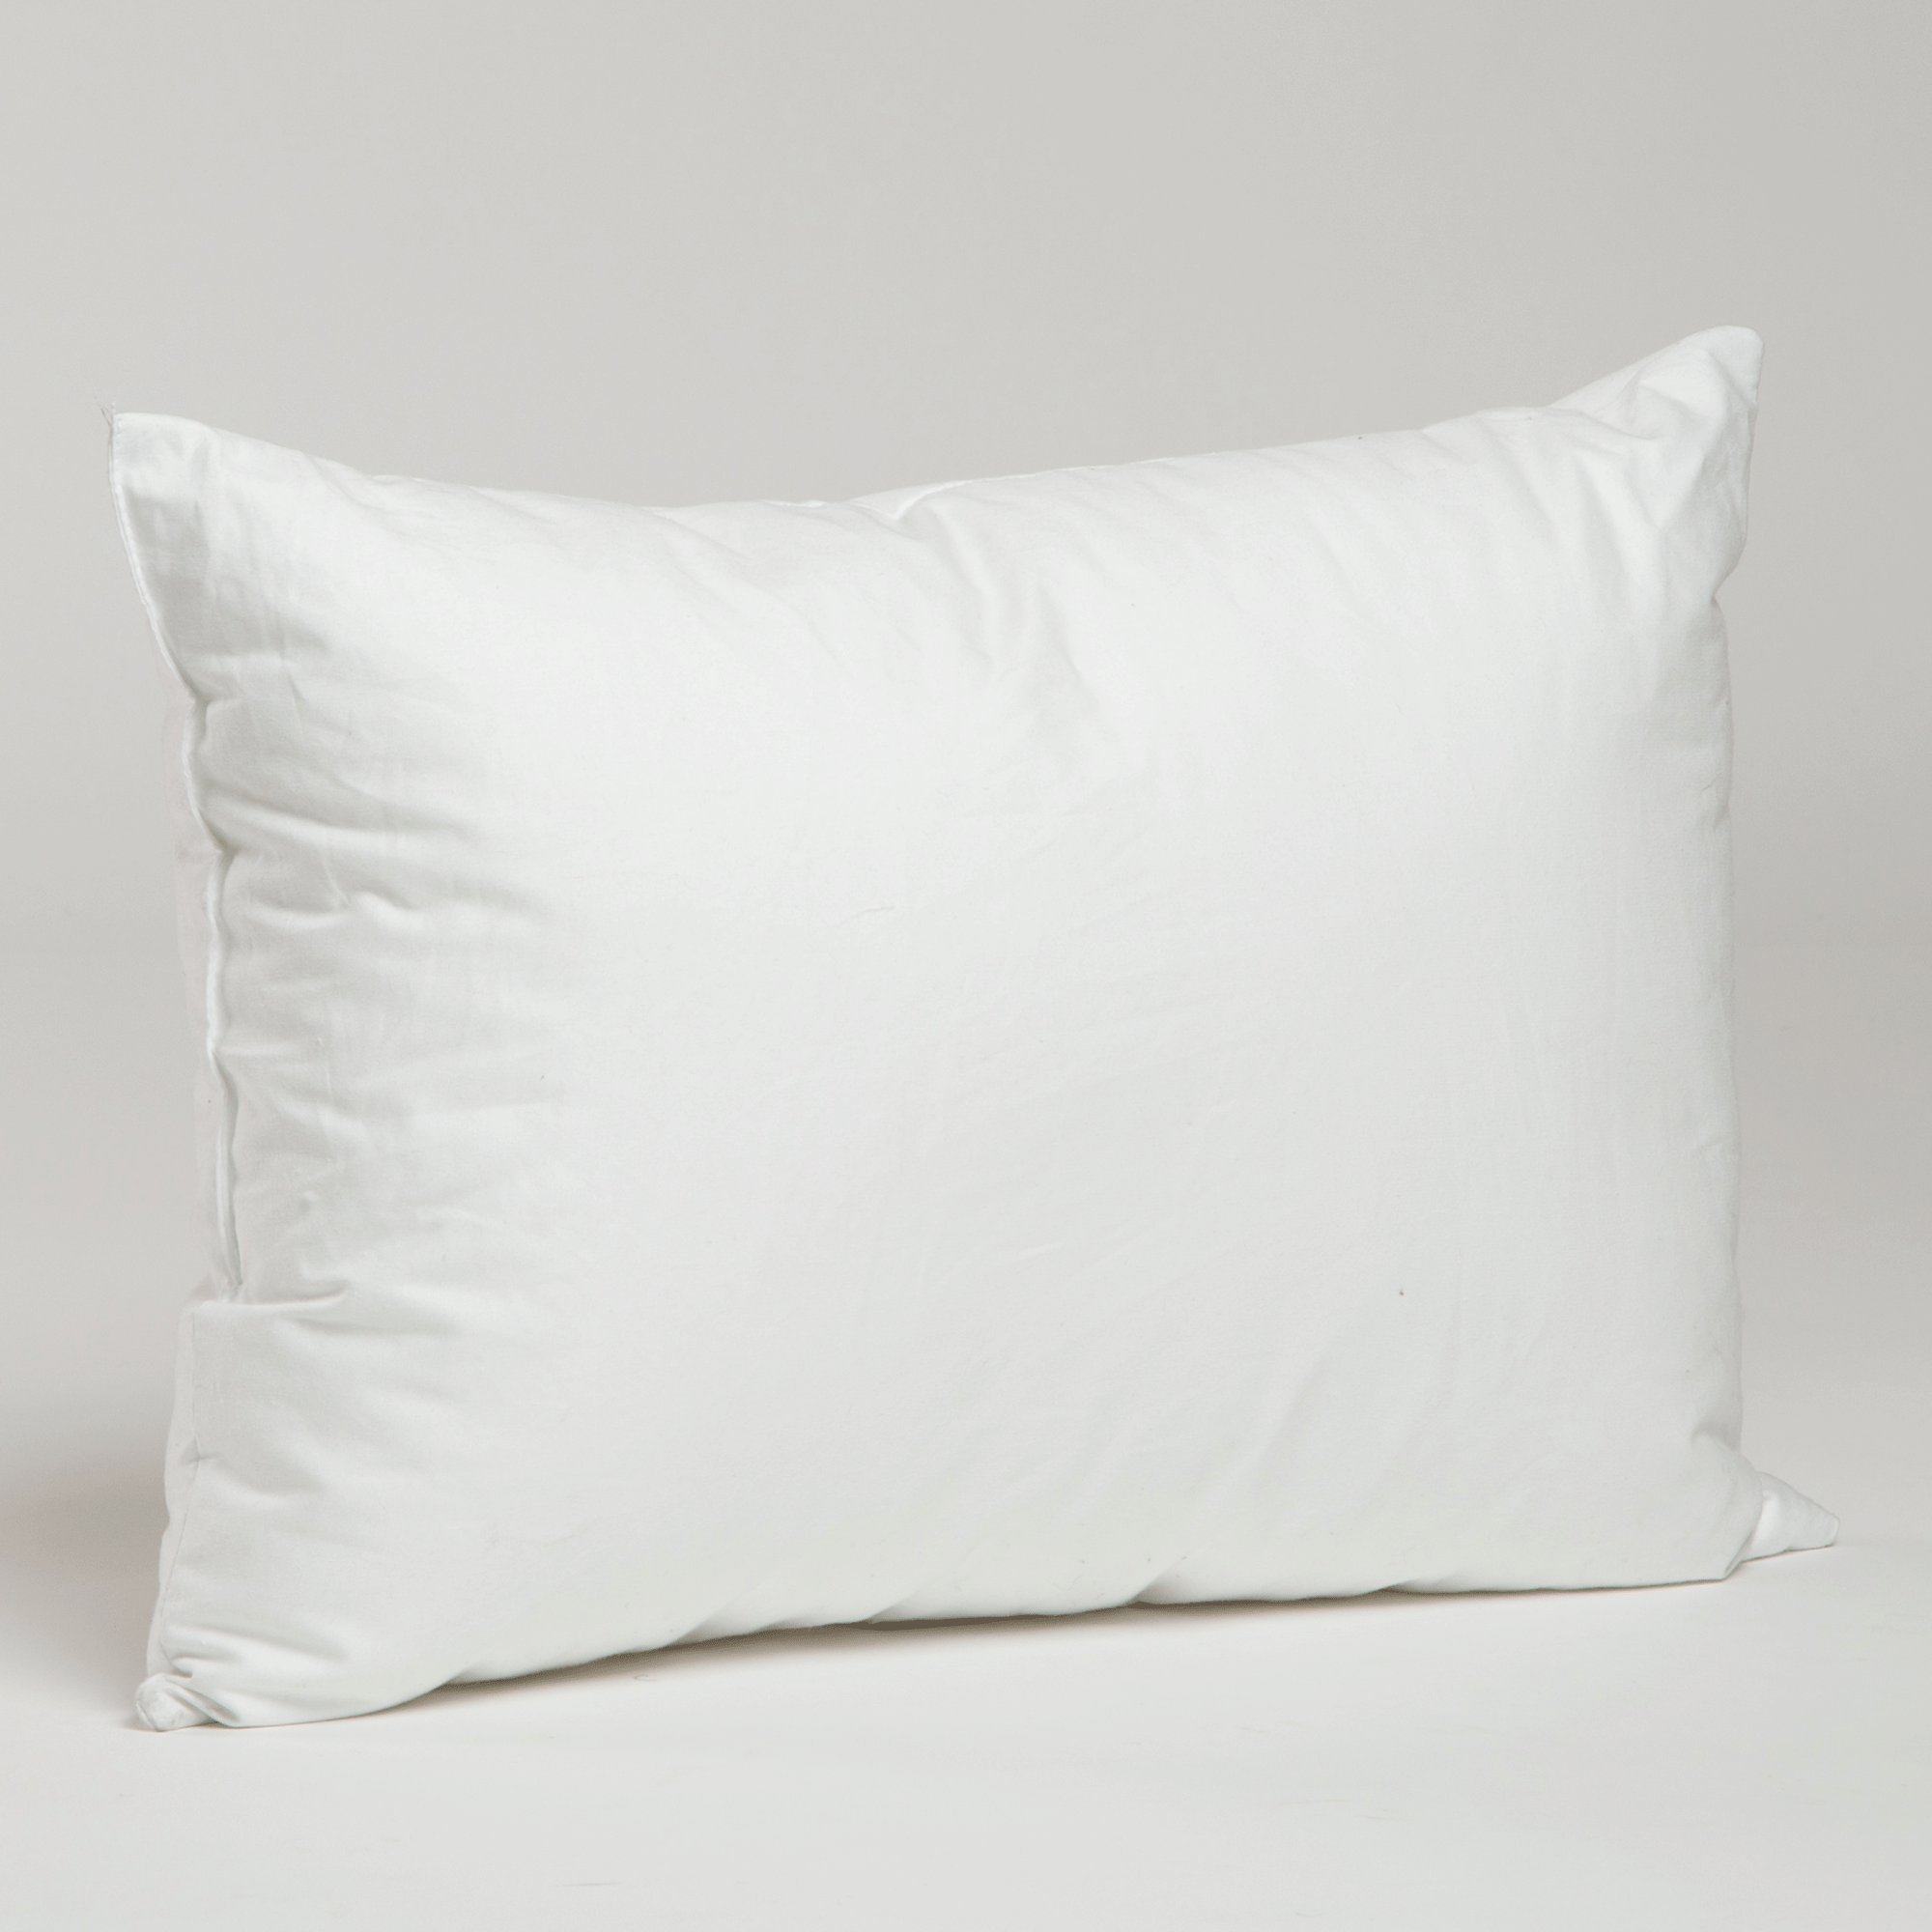 Toddler Pillow for Sleeping - Soft & Hypoallergenic - Insert Form Angel Cushion (Ages +2) Made in The USA